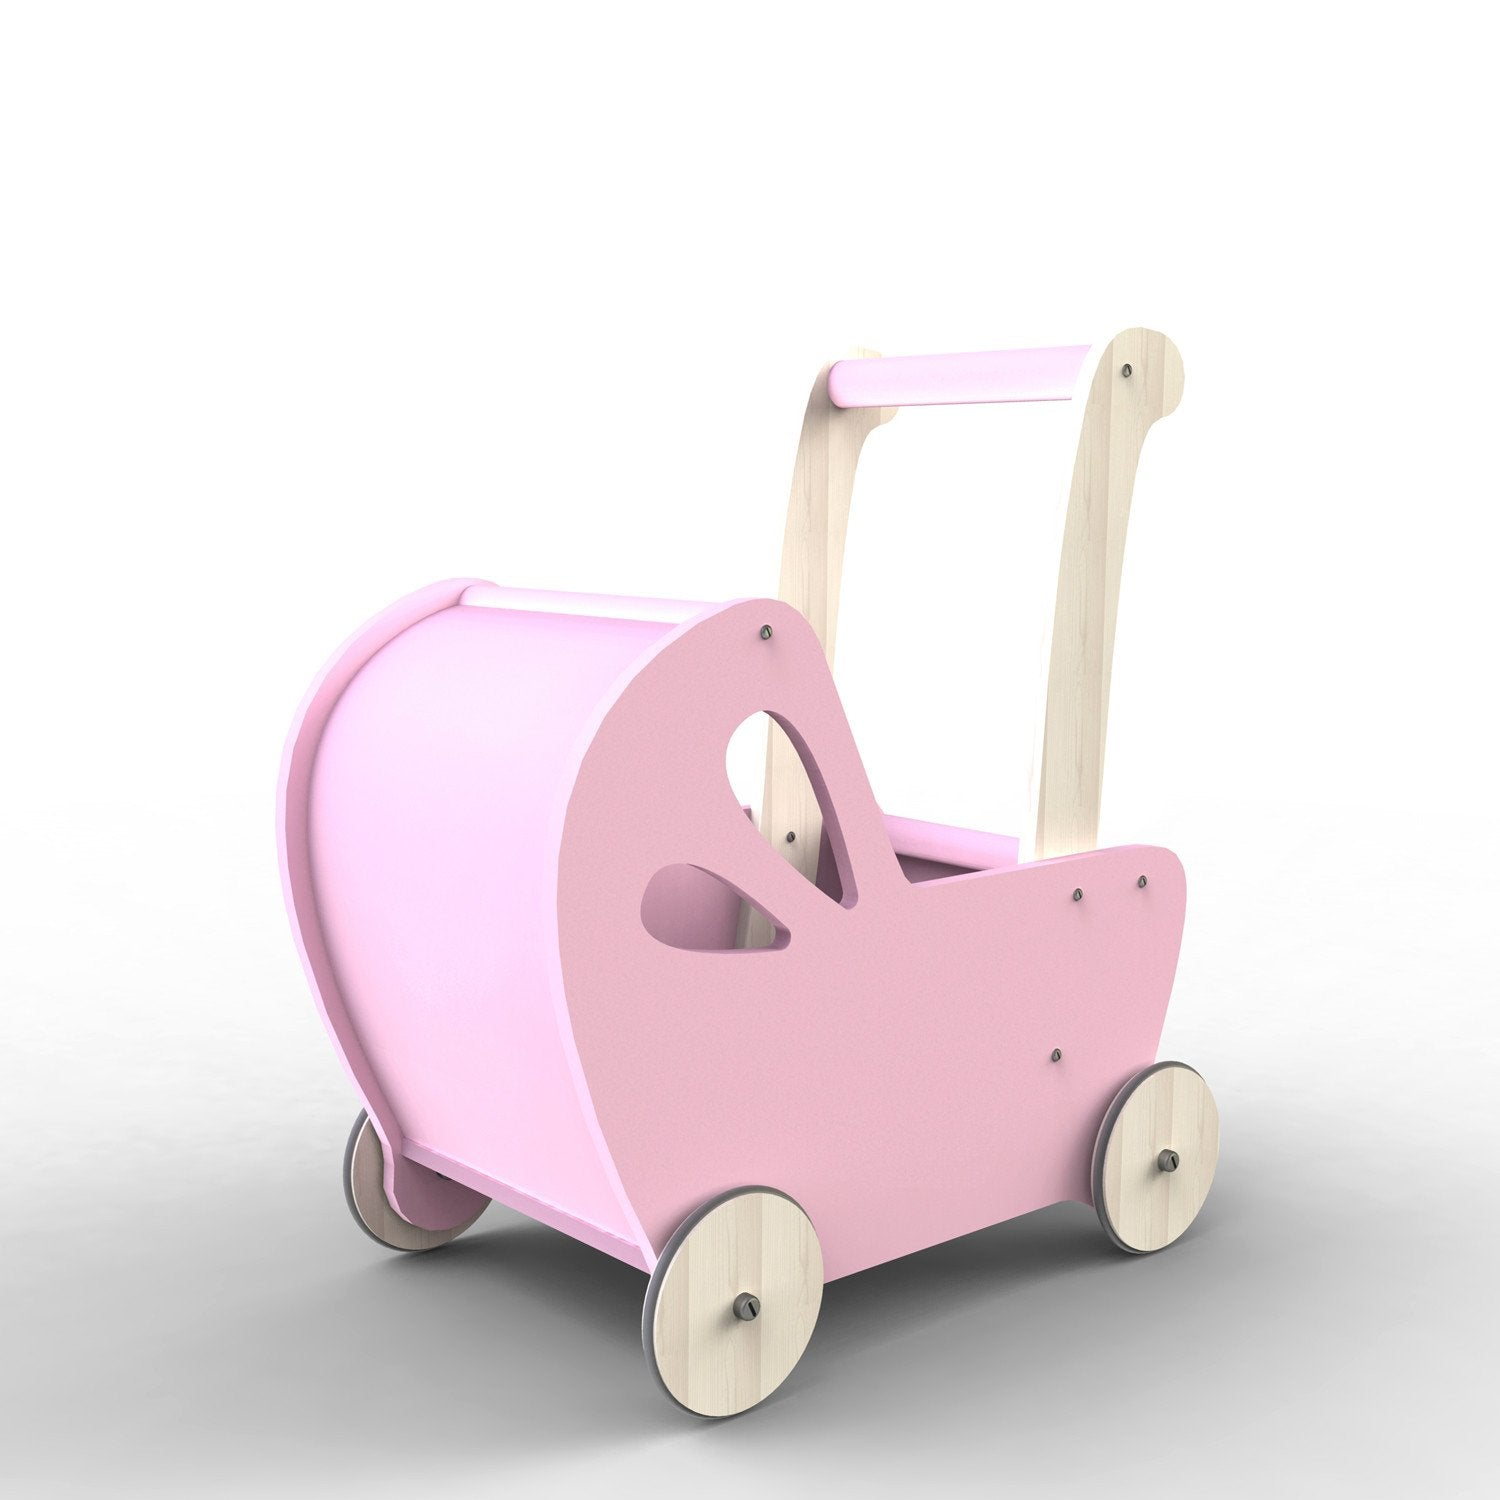 Moover Line Dolls Pram Moover Toys Dolls, Playsets & Toy Figures Pink at Little Earth Nest Eco Shop